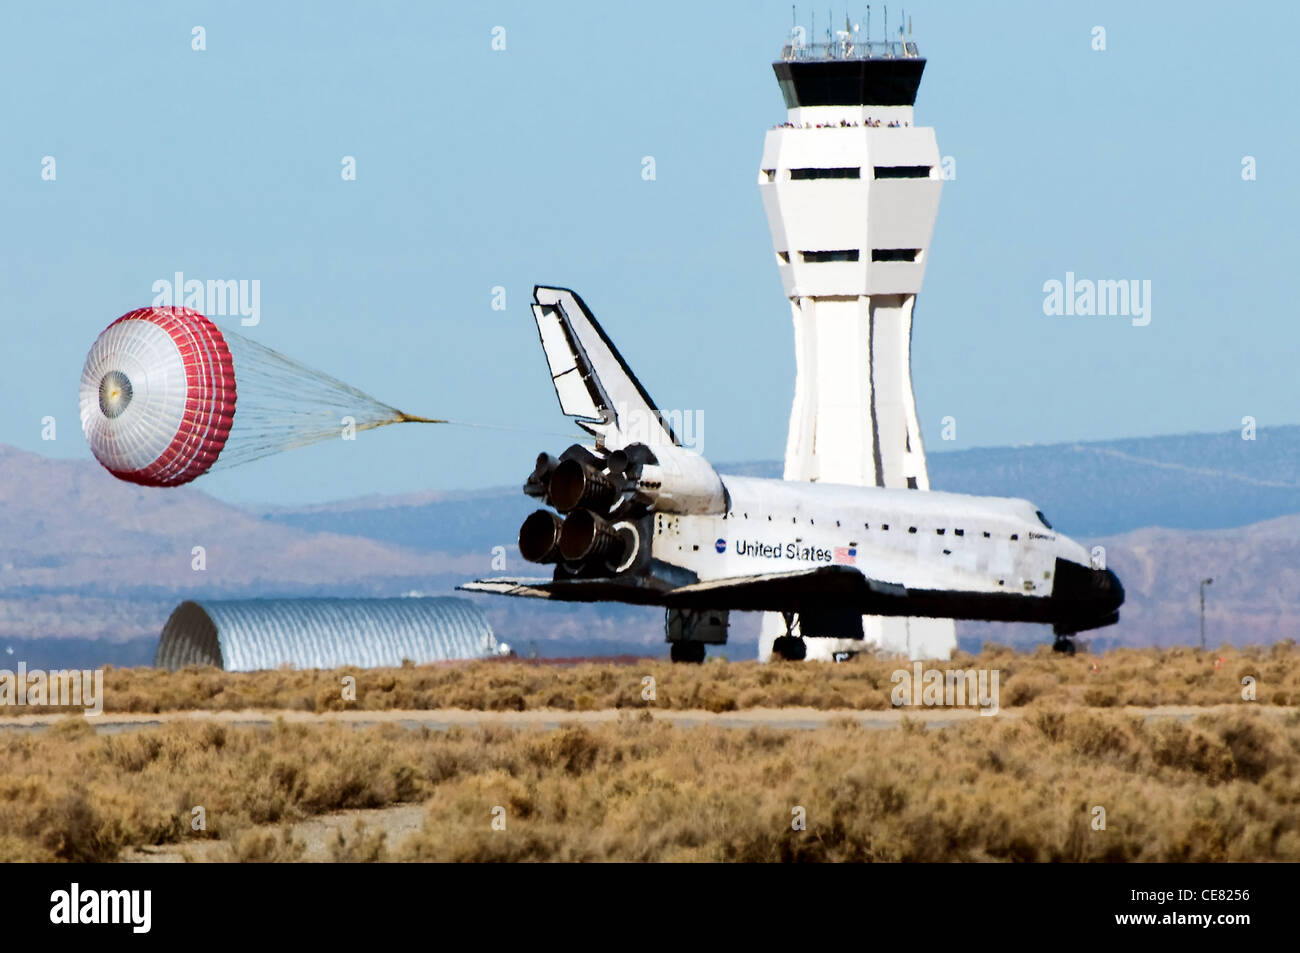 space shuttle landing at edwards air force base - photo #30